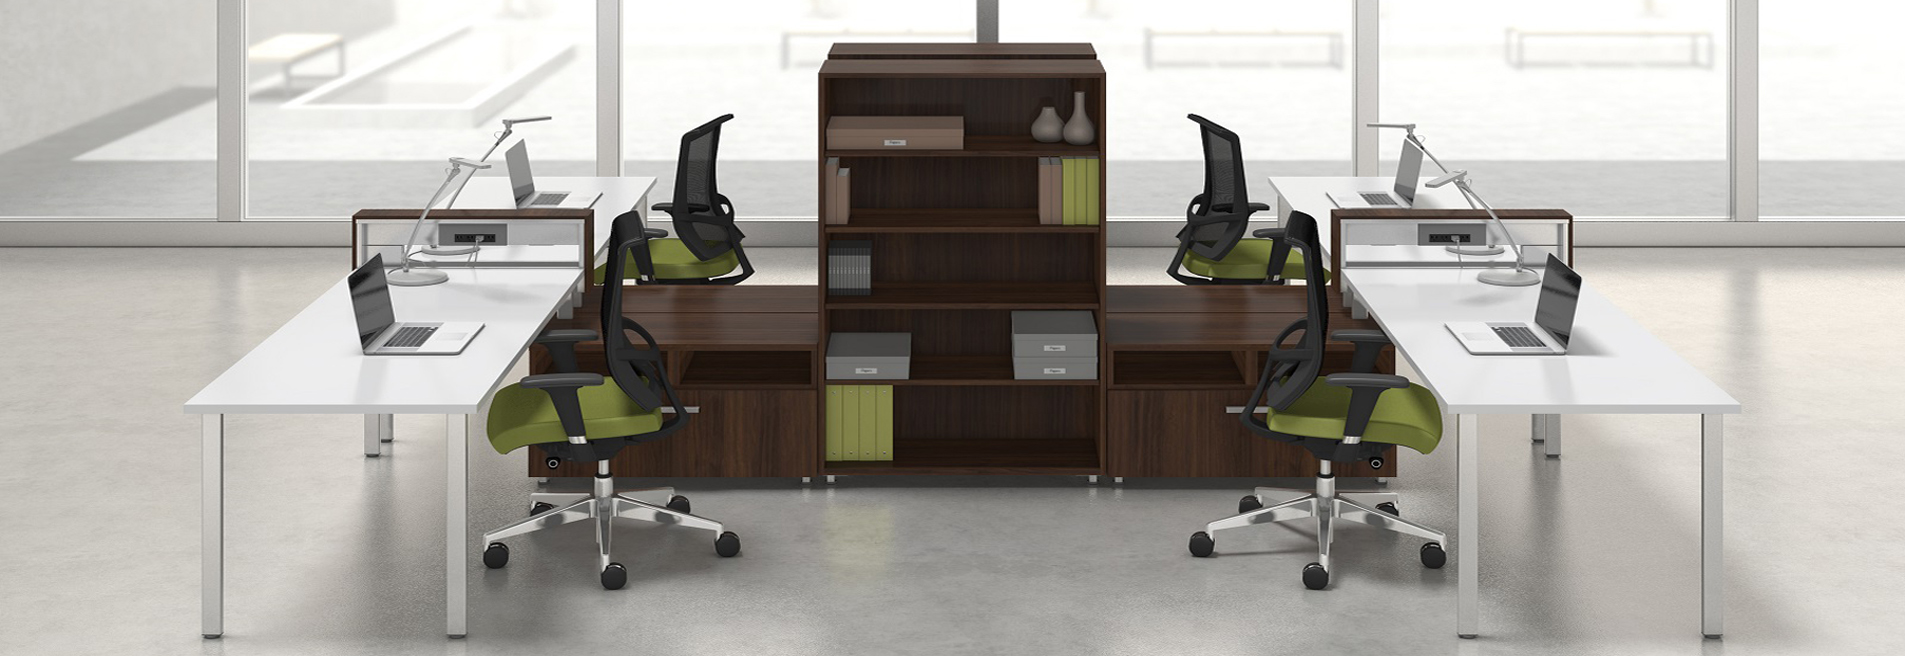 Open office cubicles Classroom Embrace The Open Office Environment Fabricmate Office Workstations